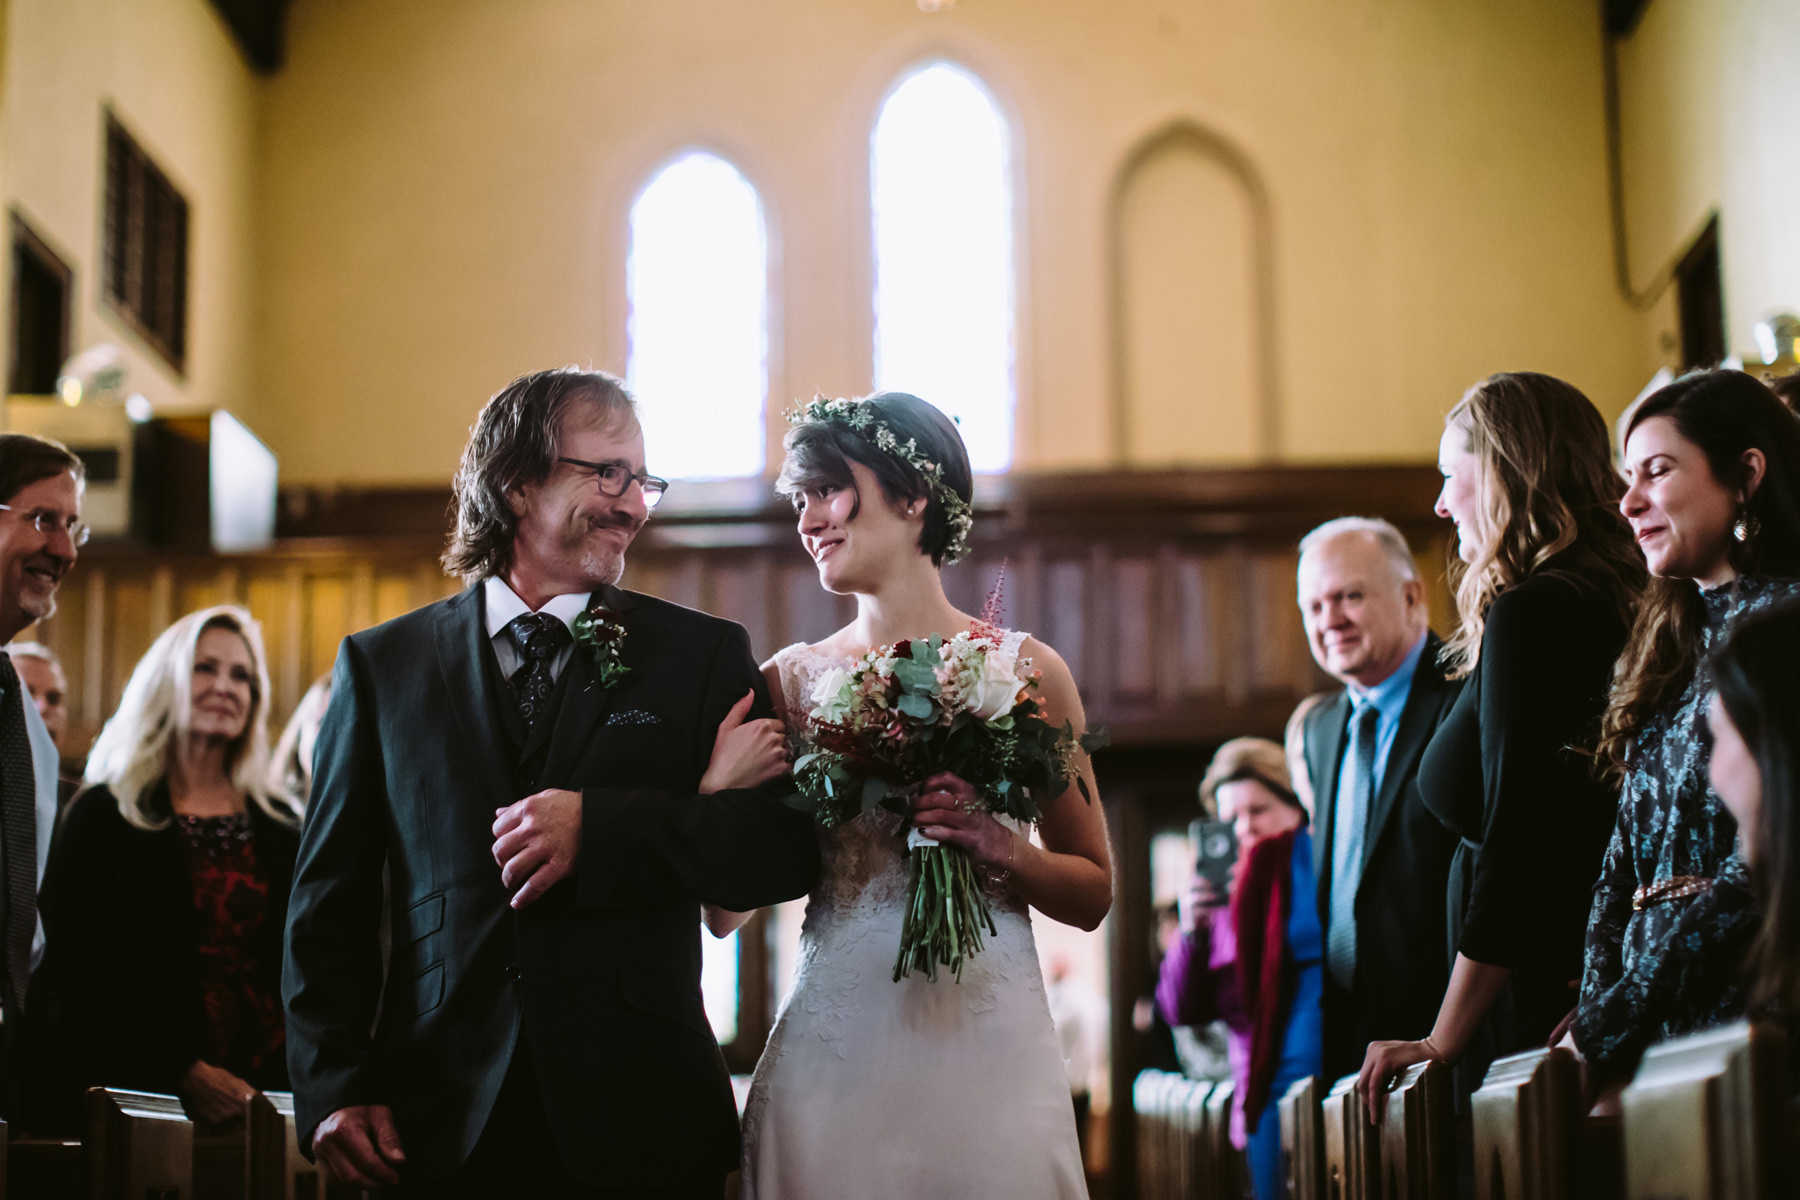 37_Jacob's Well Church Drexel Hall Fall Wedding Kansas City, Missouri_Kindling Wedding Photography.JPG